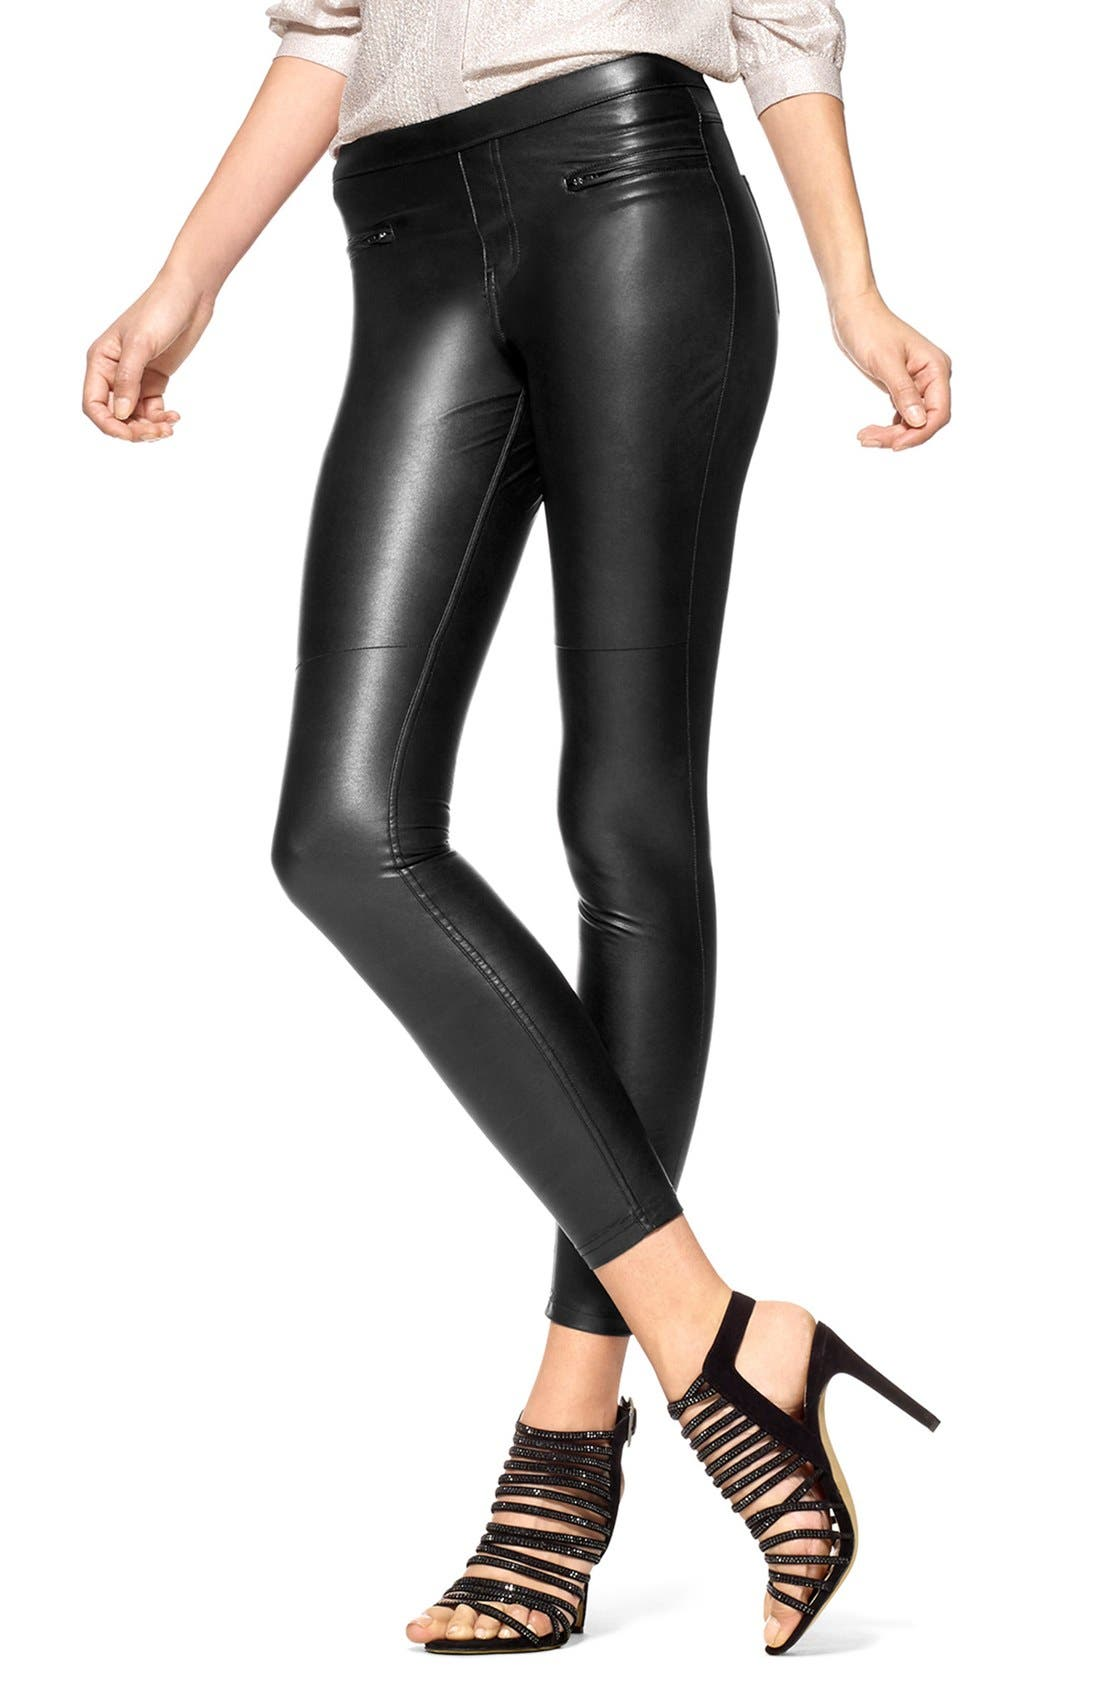 HUE, 'Leatherette Skimmer' Faux Leather Leggings, Main thumbnail 1, color, 001